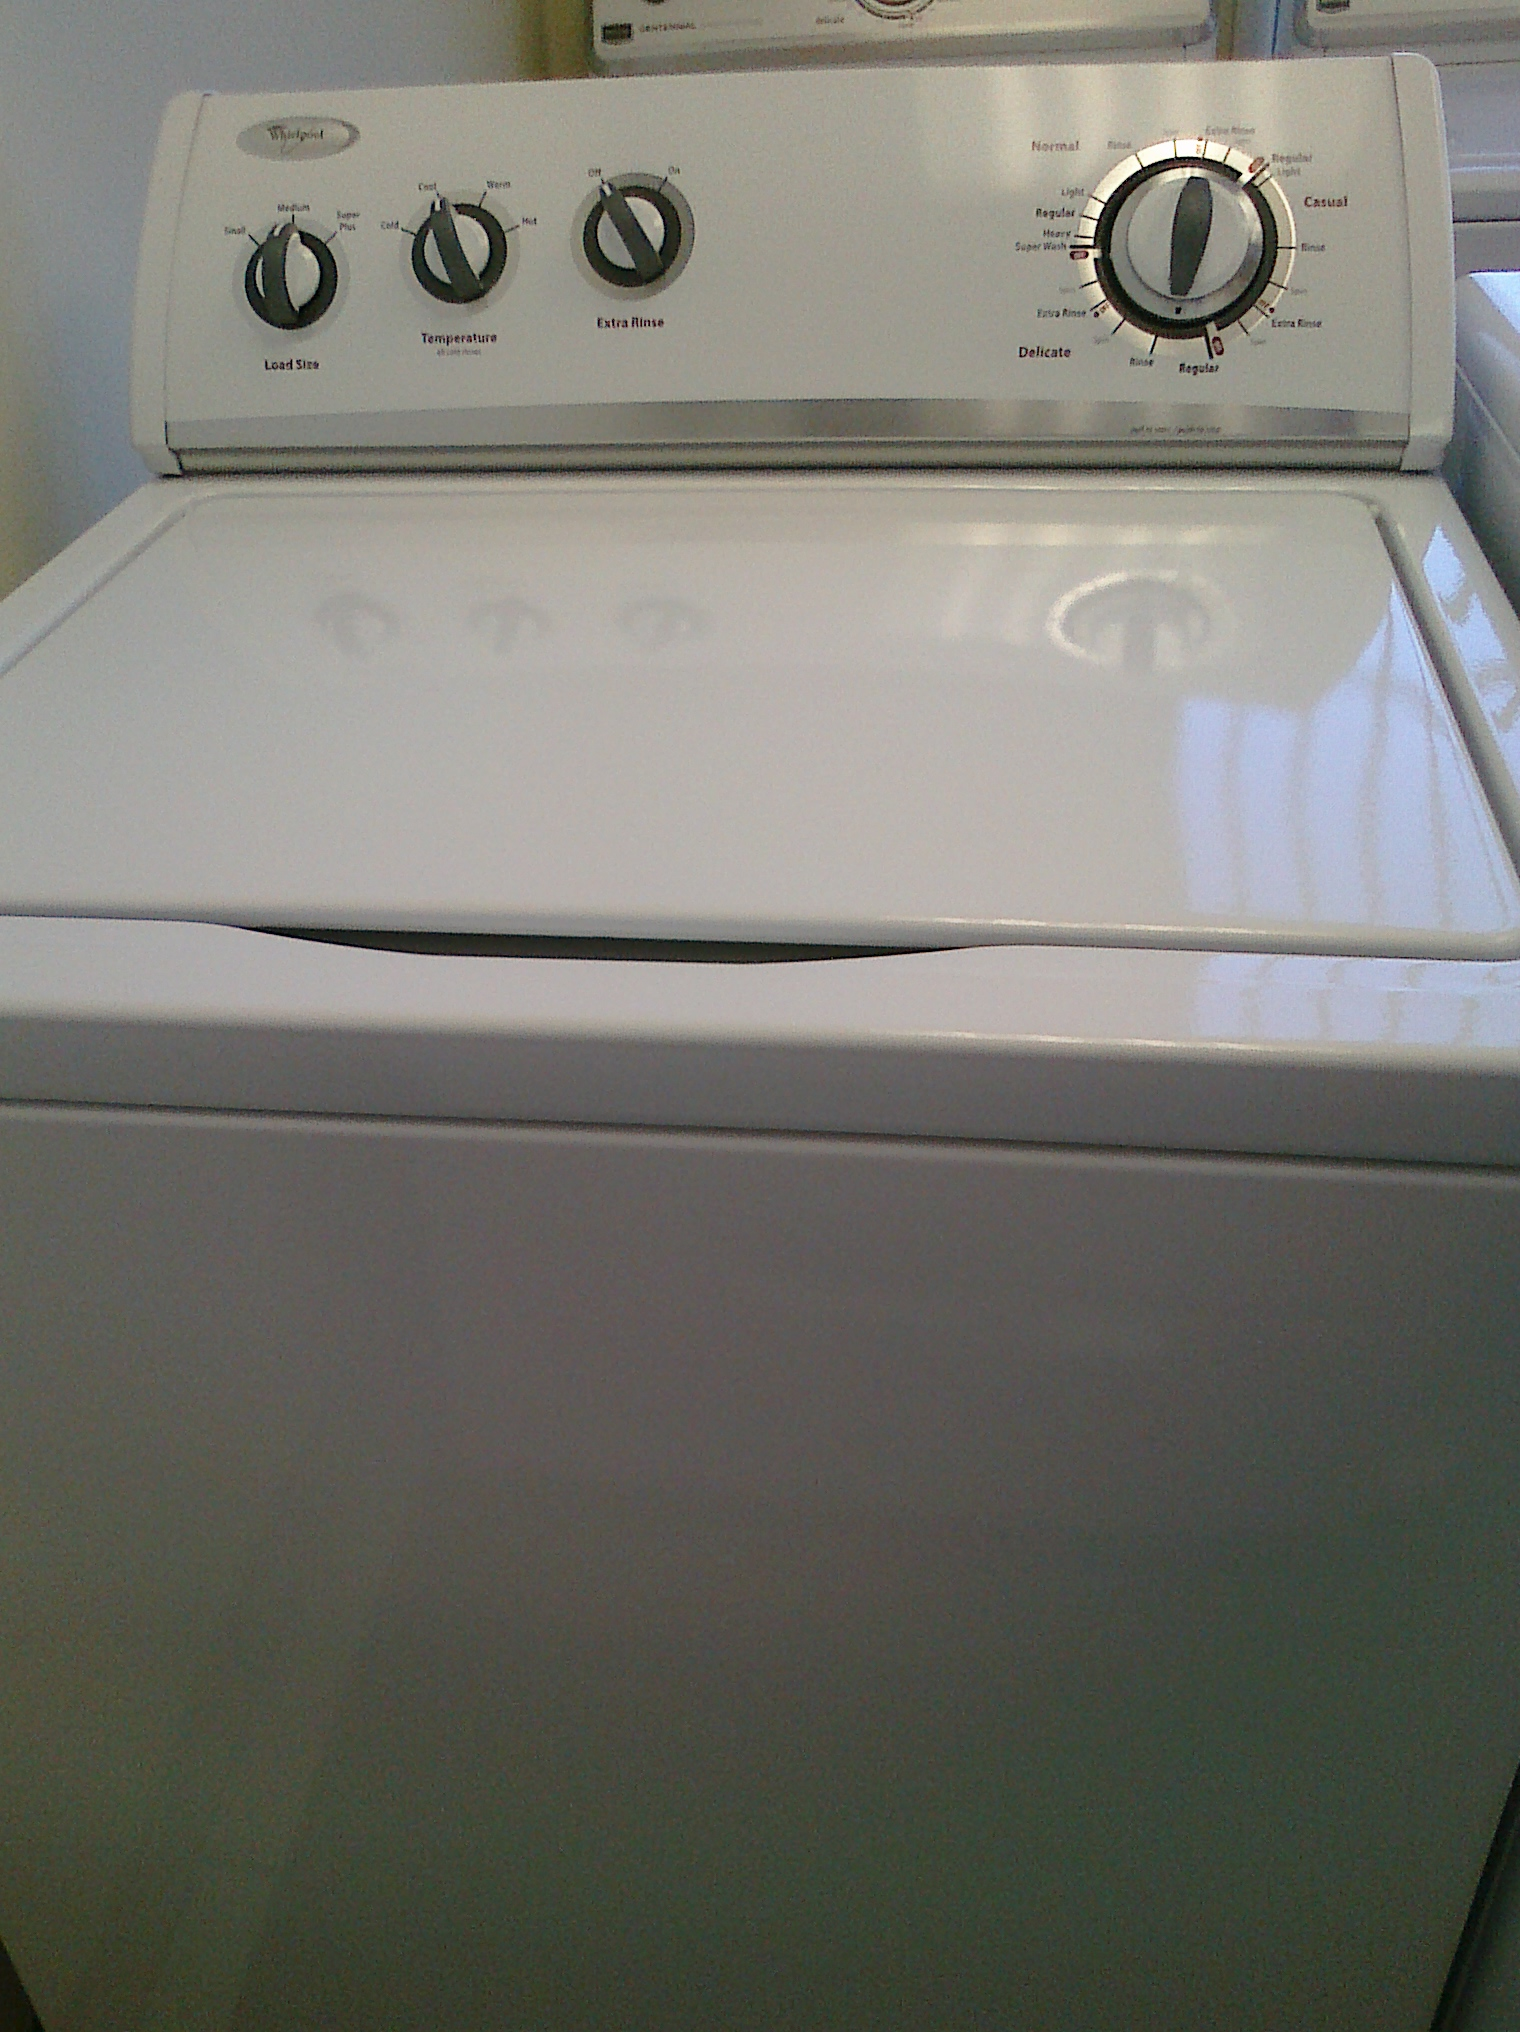 9 Whirlpool Wtw5200vq Top Load Washer White Feder S